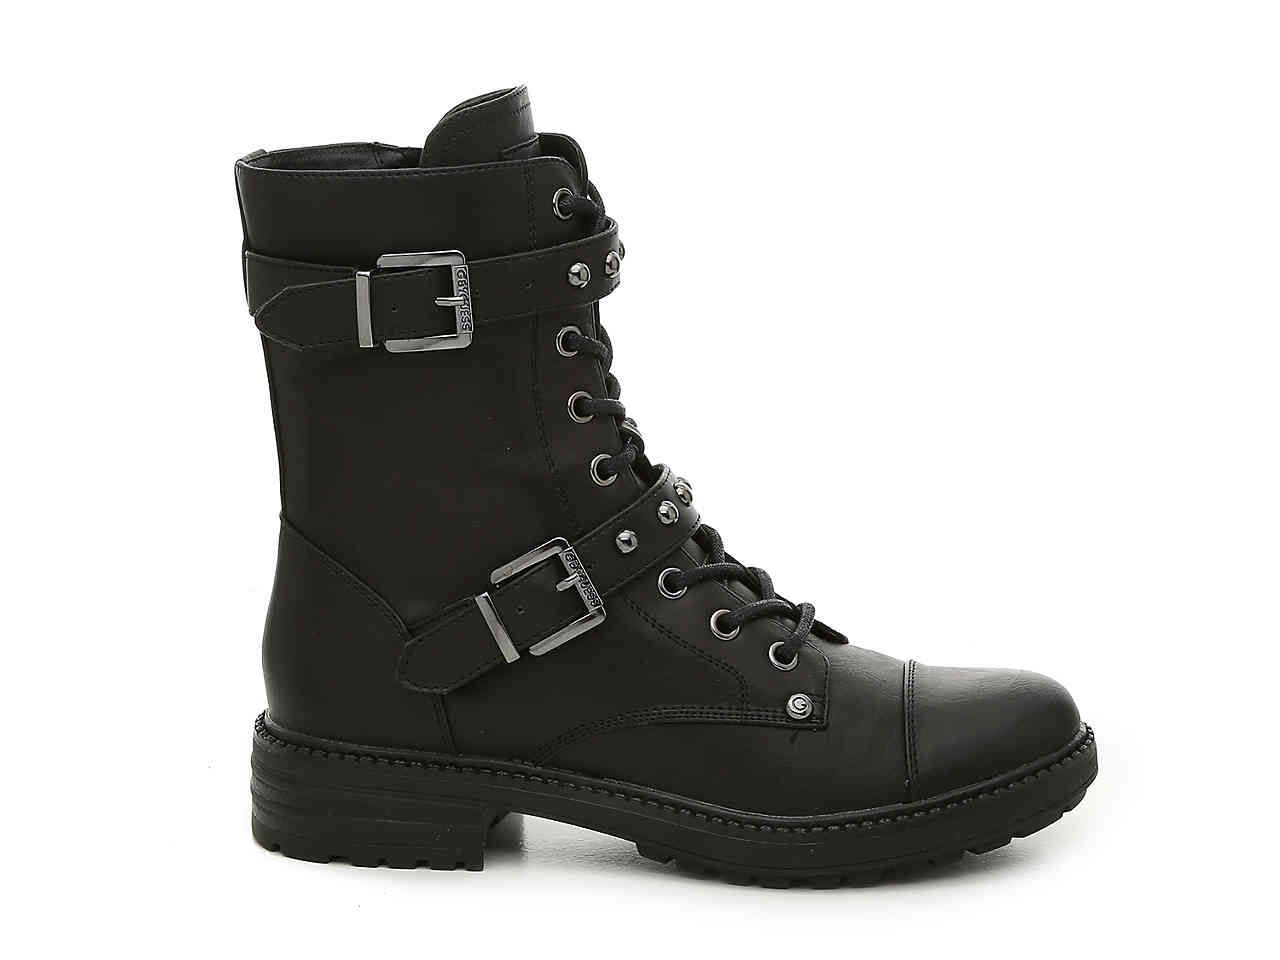 a5d809b70 G by GUESS Granted Combat Boot Women's Shoes | DSW | Clothing ...